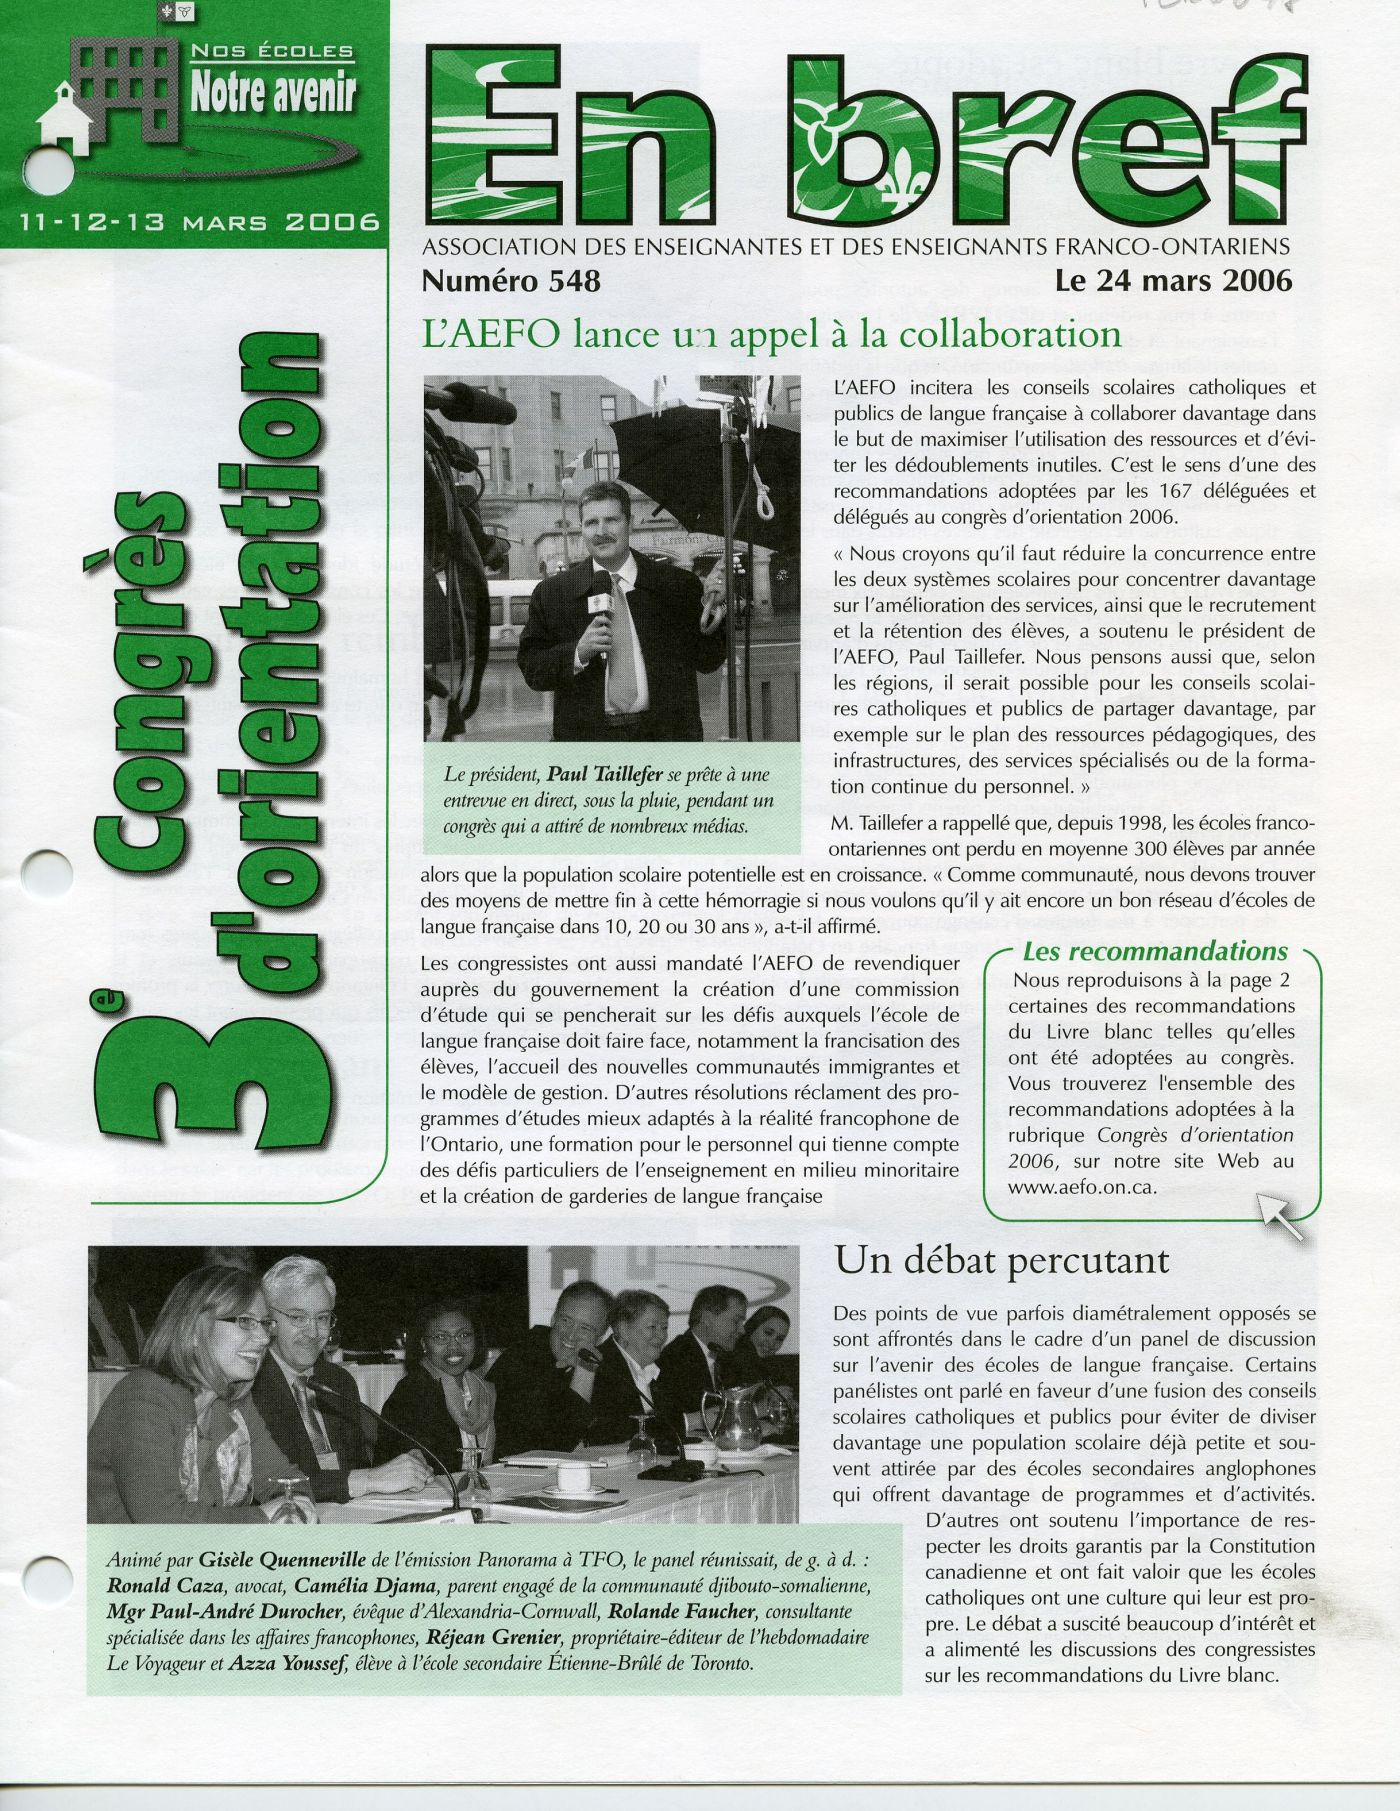 "Colour photograph of the first page of a French newsletter, including text and photos. On the left, oriented vertically in green letters, the main topic of this issue of the newsletter: the ""3e congrès d'orientation"" (3rd orientation assembly). The layout is irregular to capture the reader's attention."